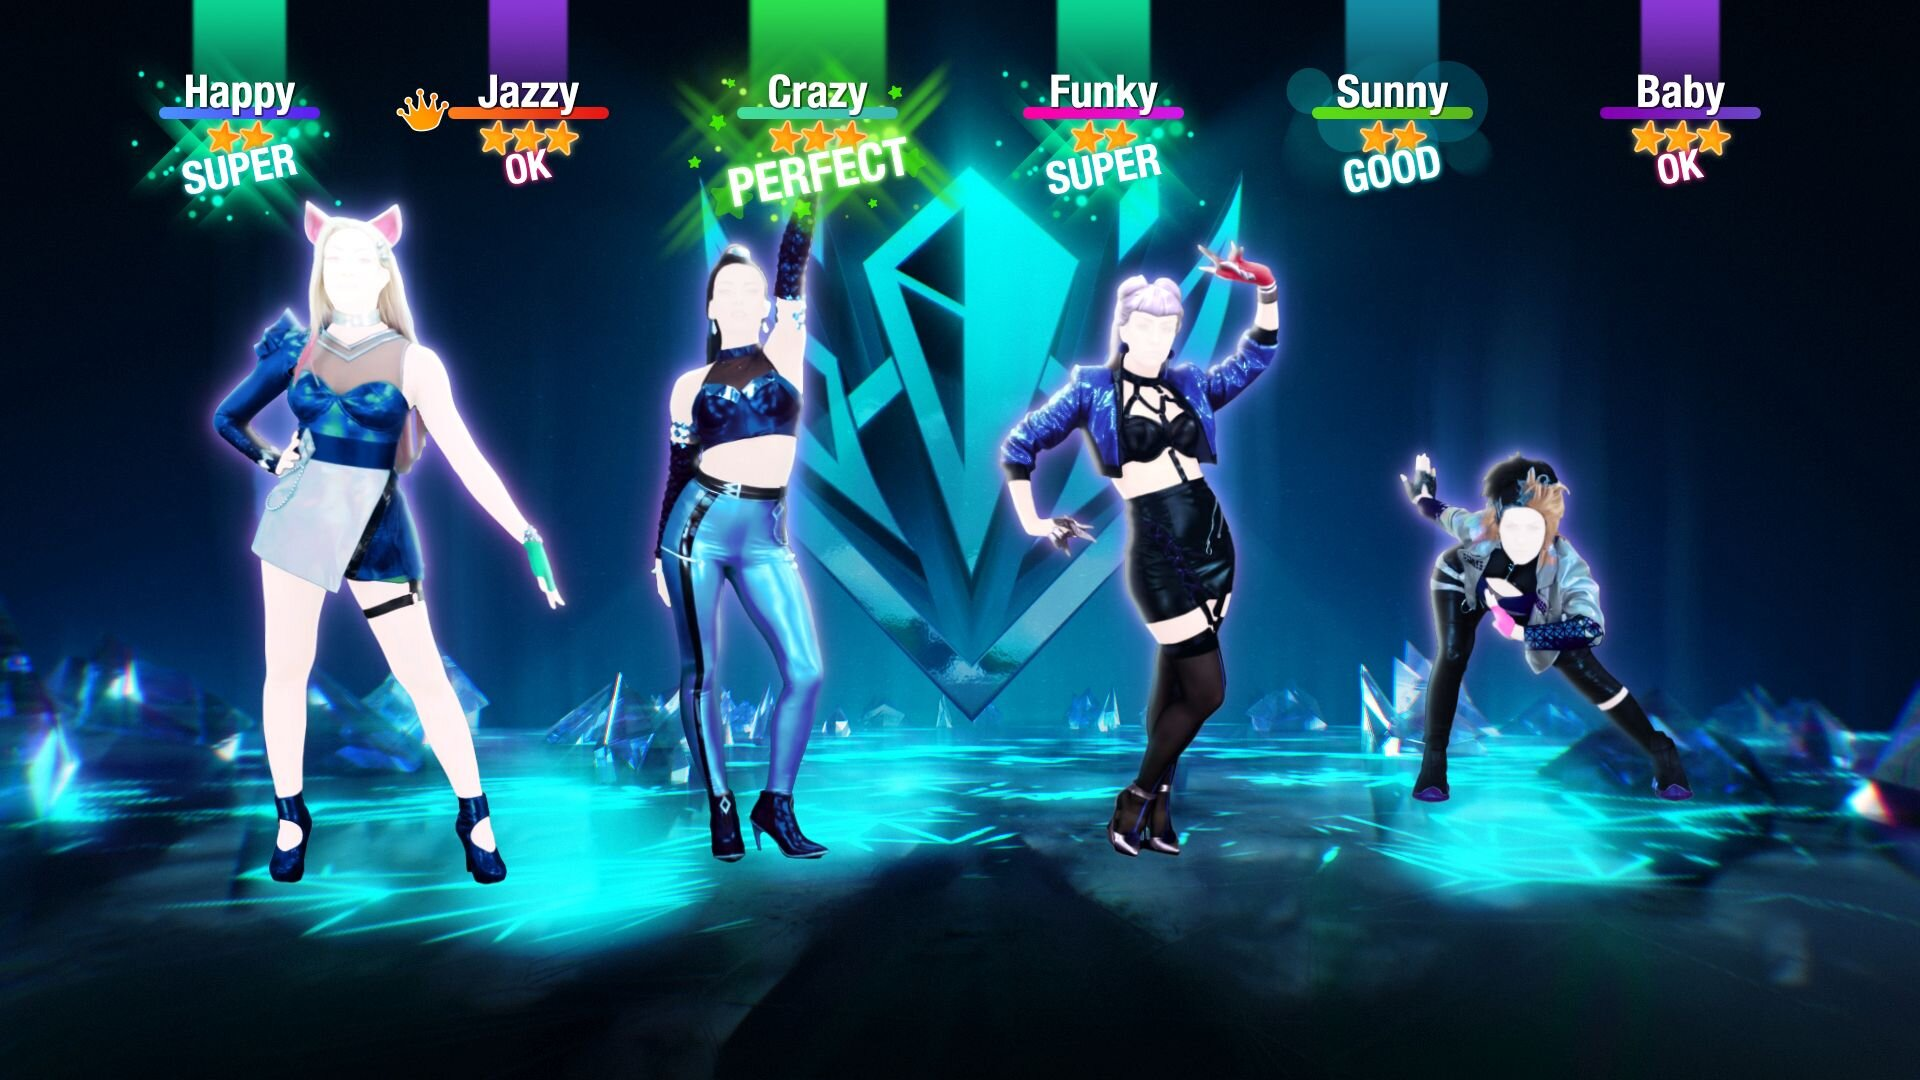 K Da Invade Just Dance 2021 For Free For 3 Months Geektyrant